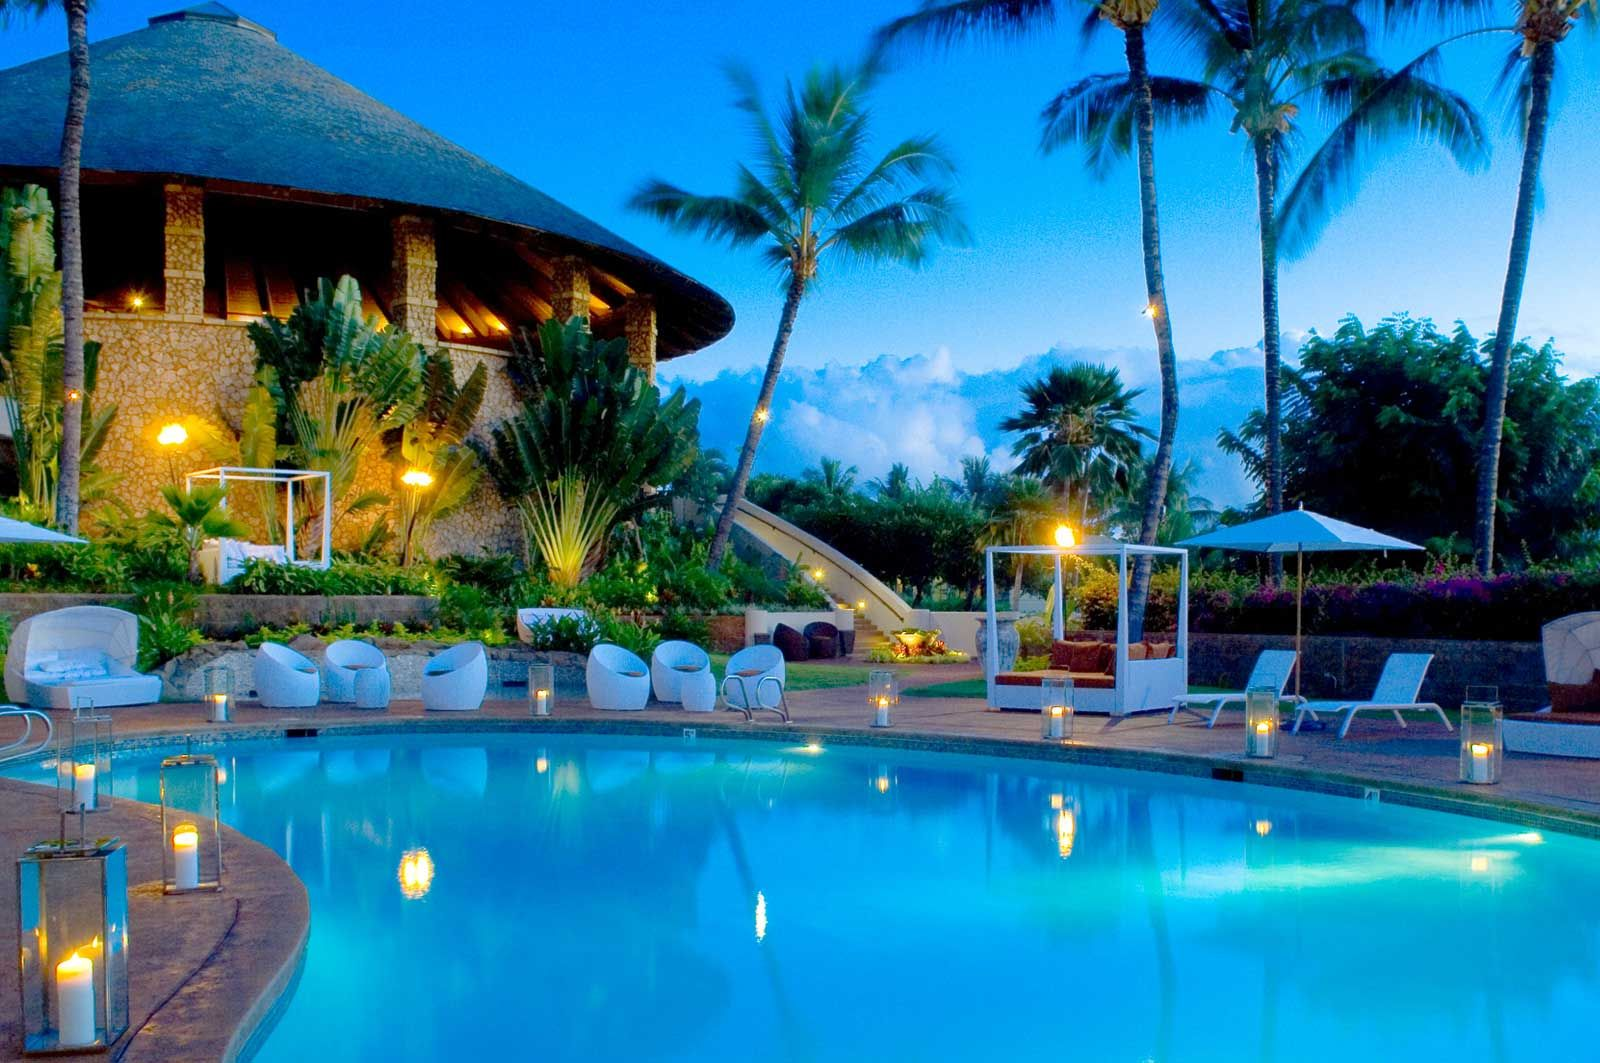 Image gallery maui luxury hotels for Nicest hotels in maui